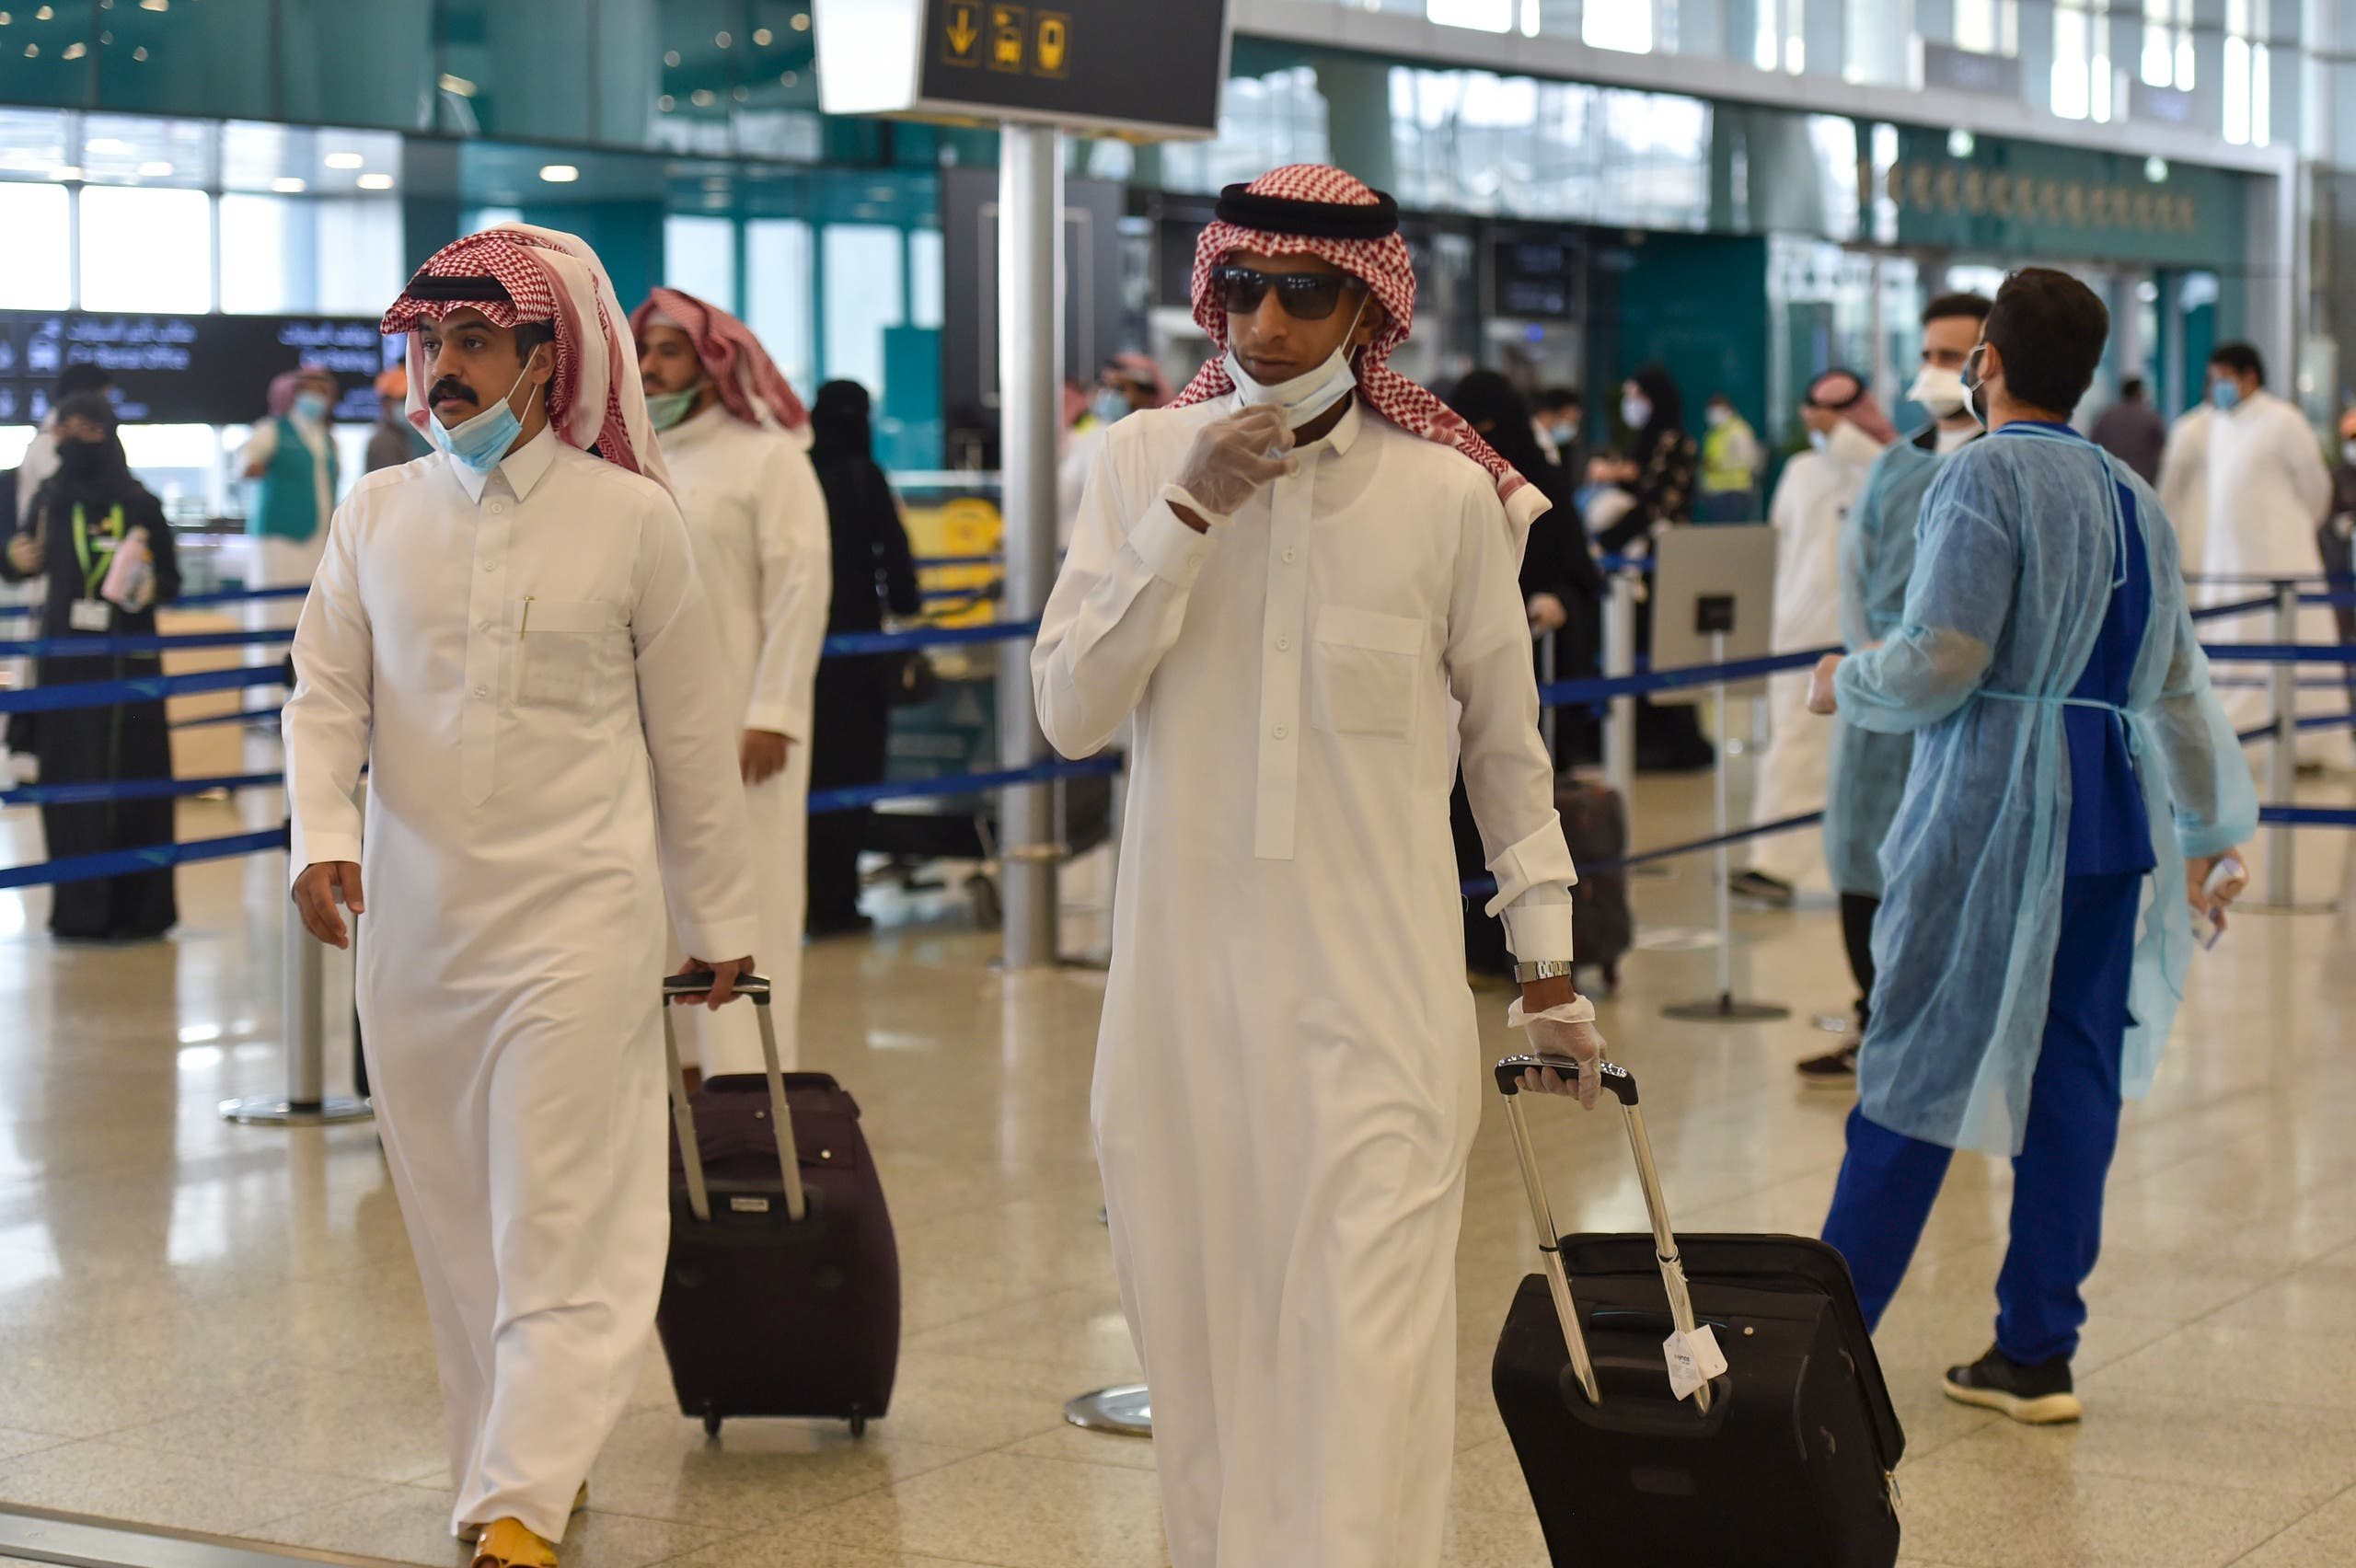 Saudi passengers queue for a temperature check at terminal 5 in the King Fahad International Airport, designated for domestic flights, in the capital Riyadh. (File photo: AFP)